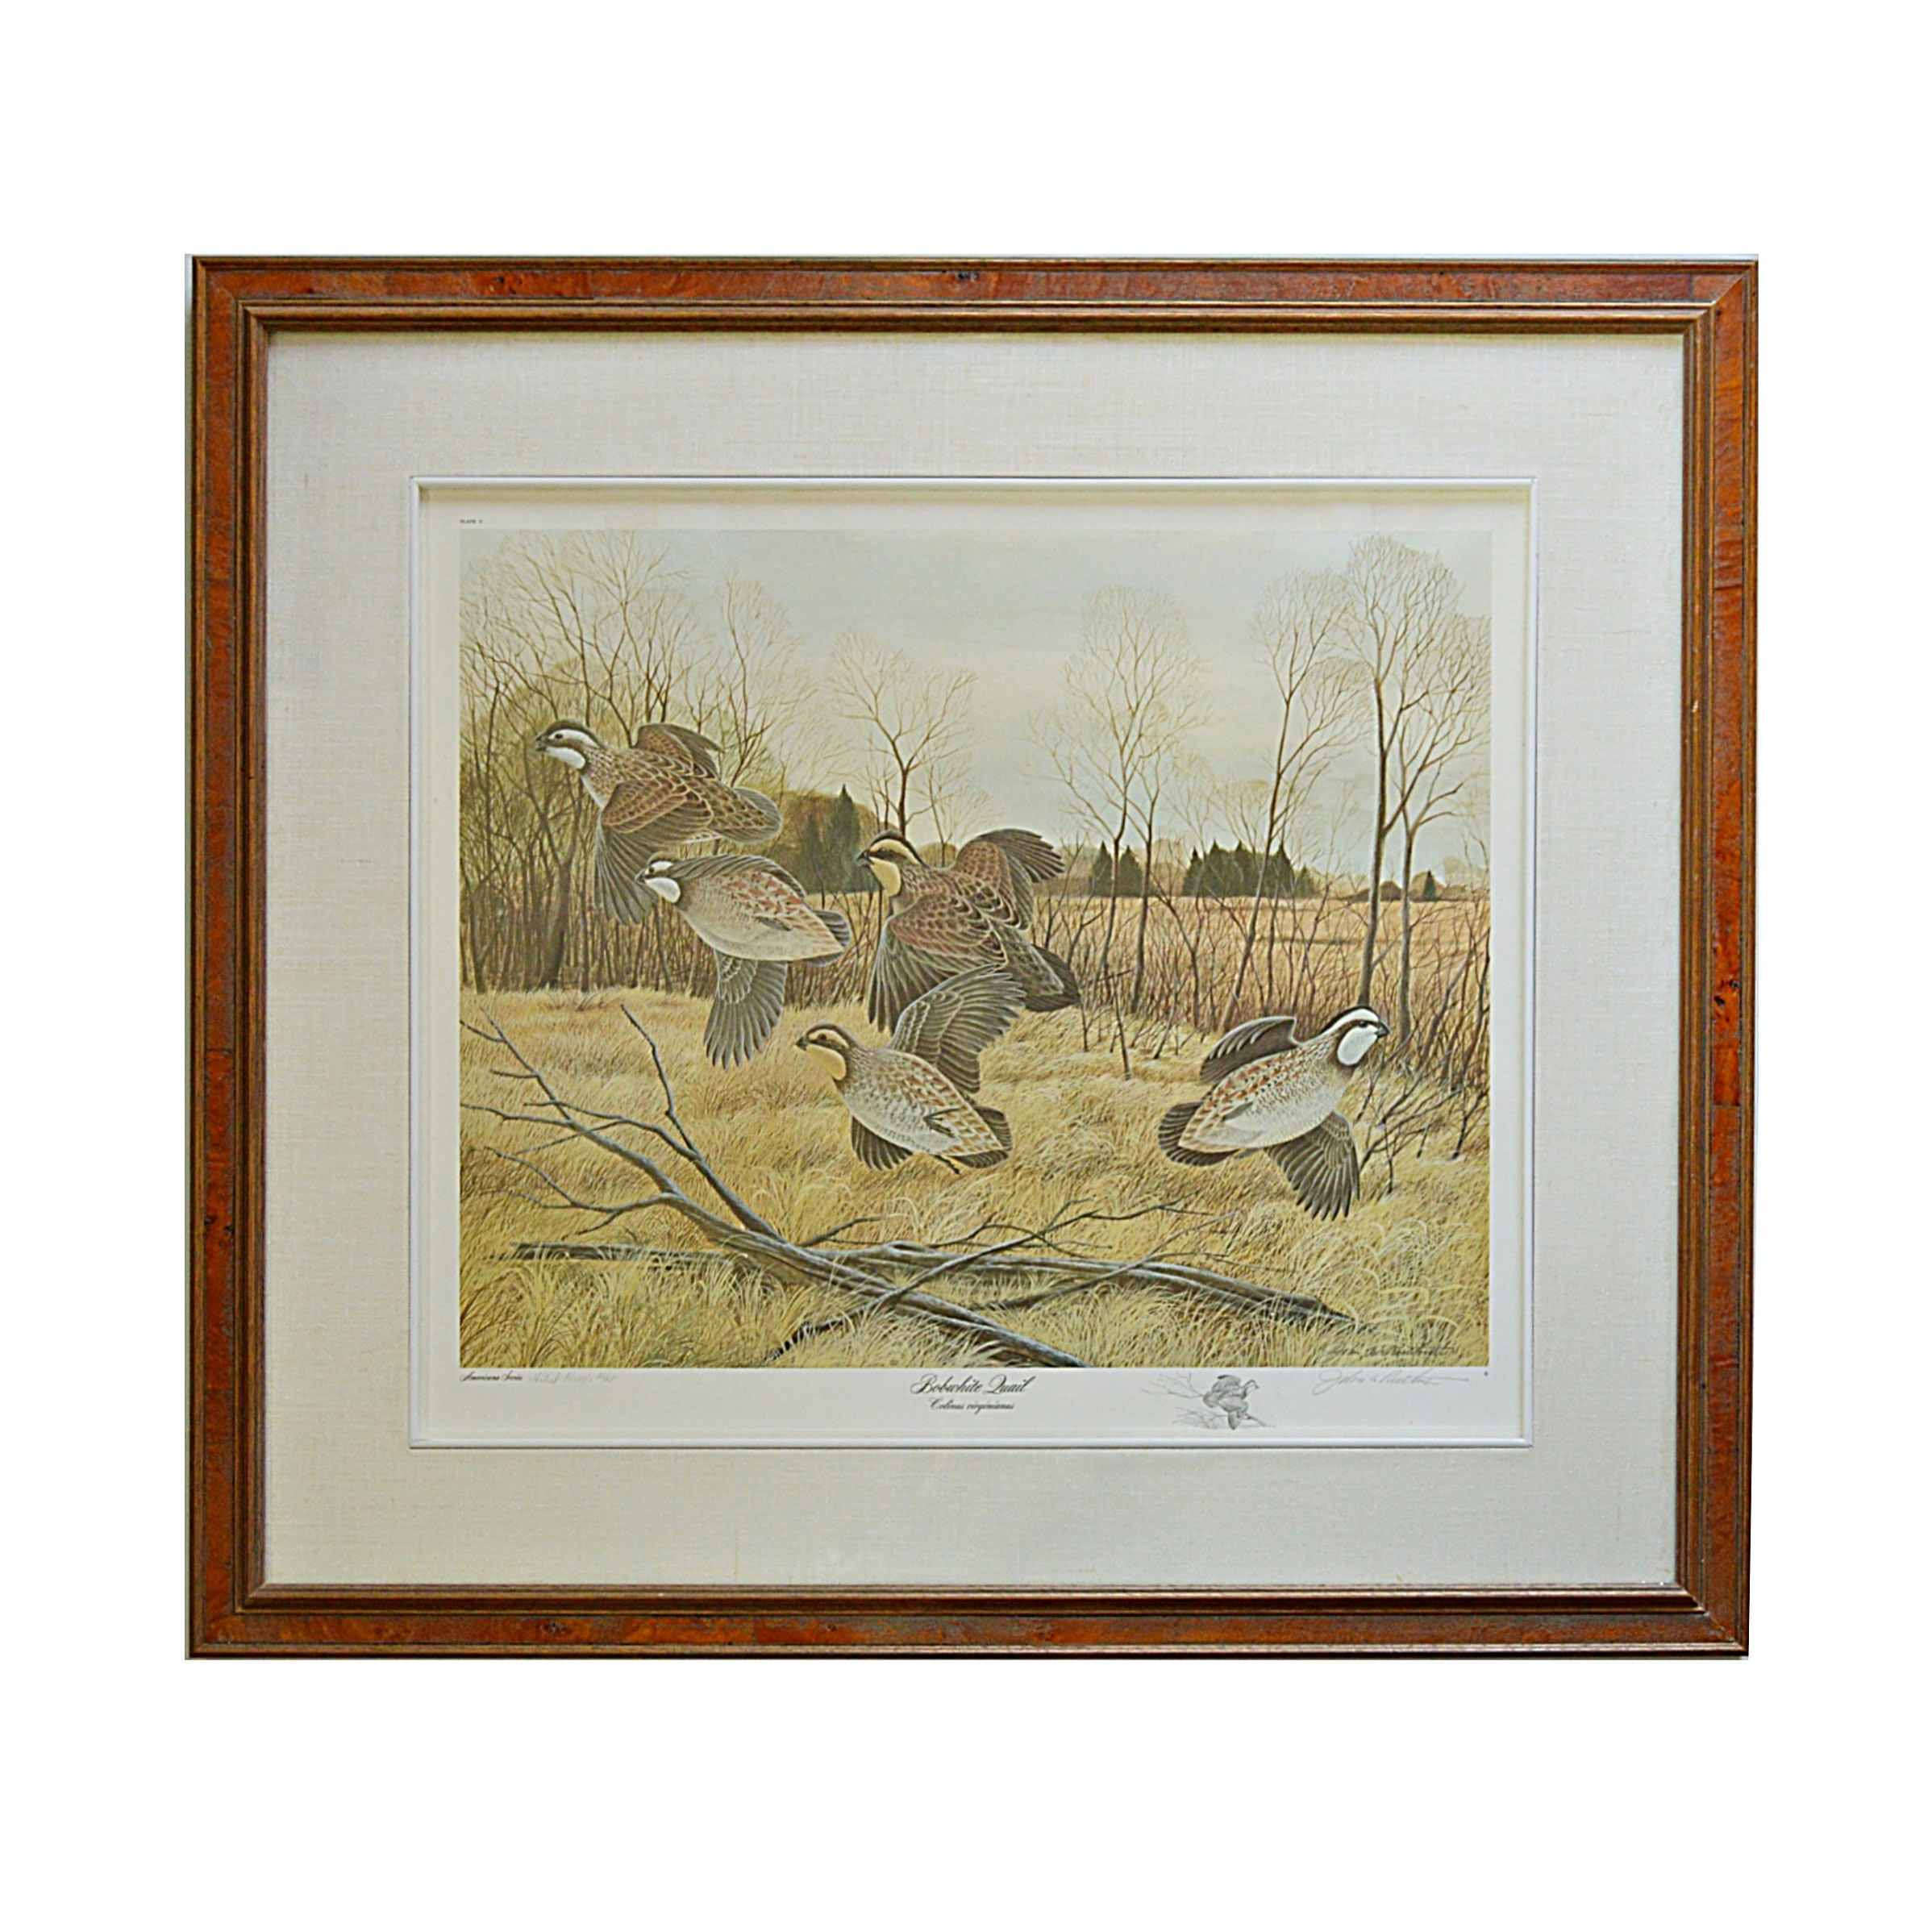 "John Ruthven Signed Limited Edition Offset Lithograph ""Bobwhite Quail"""